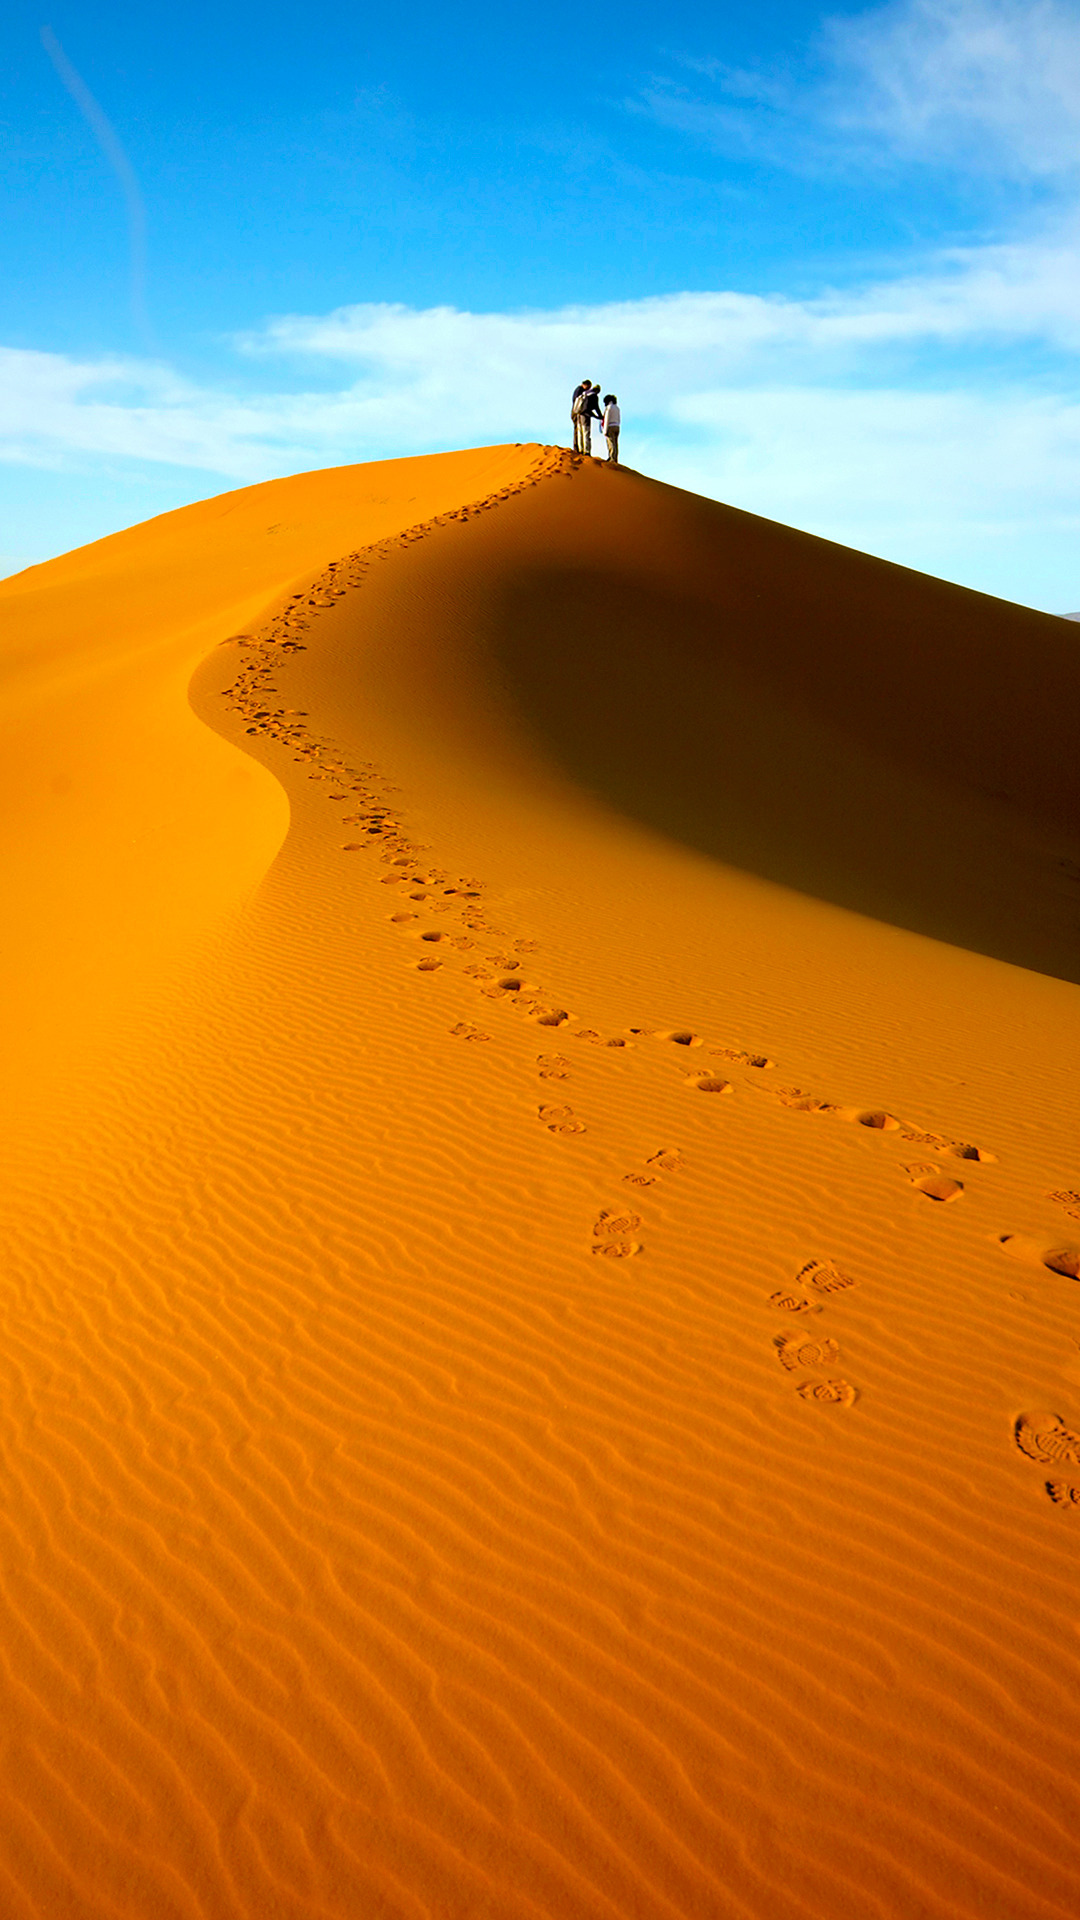 On Top of the Dunes, Desert, Dunes, Footsteps, People, HQ Photo